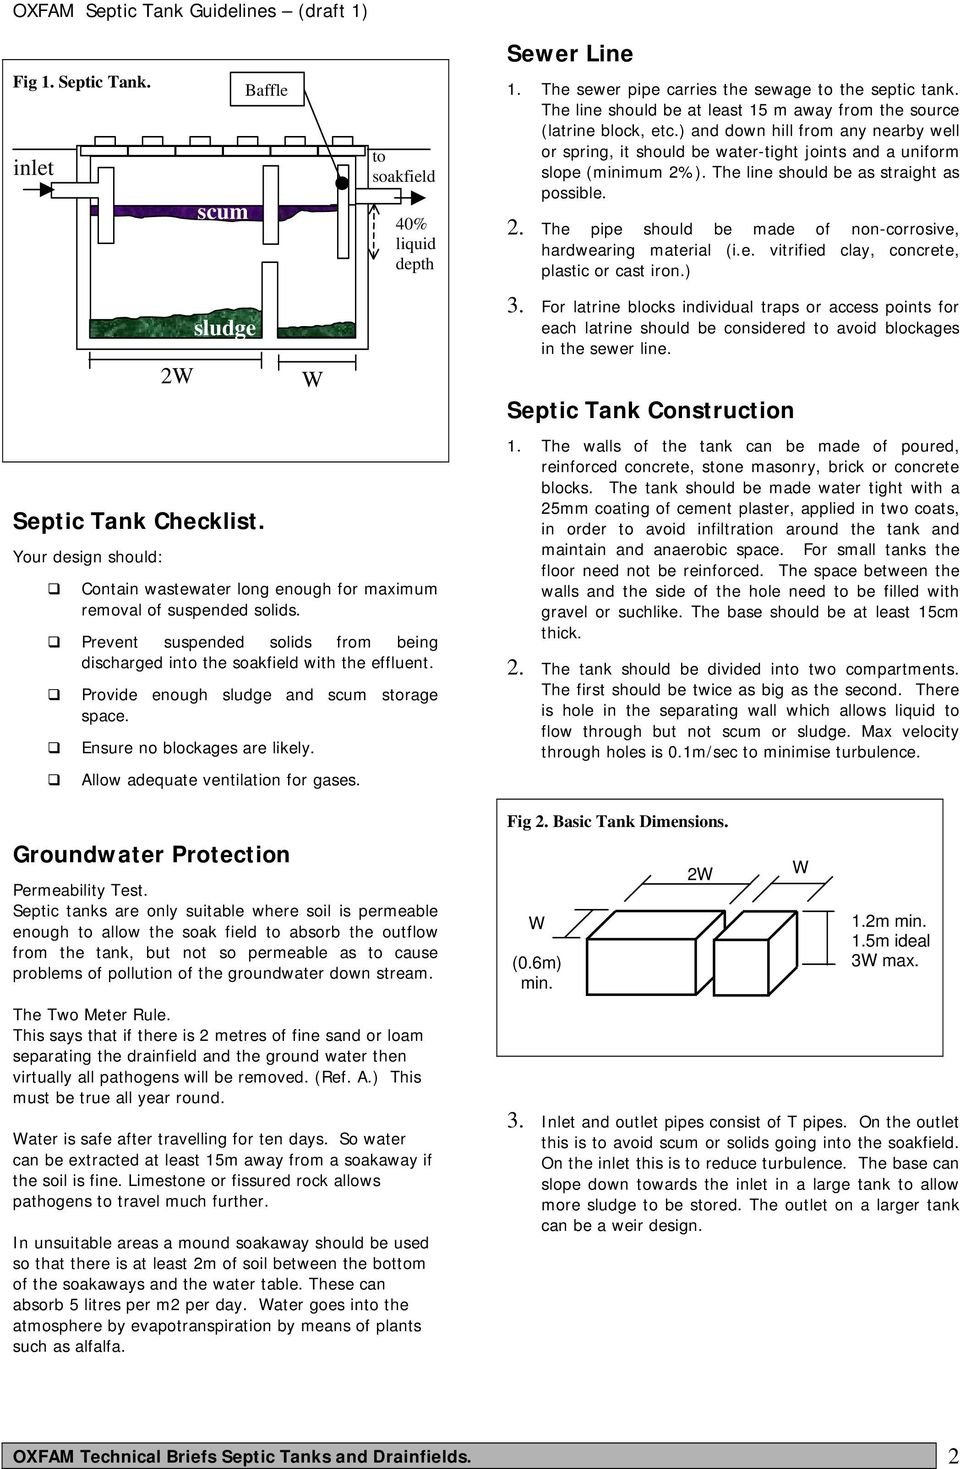 Septic tanks: types, selection criteria